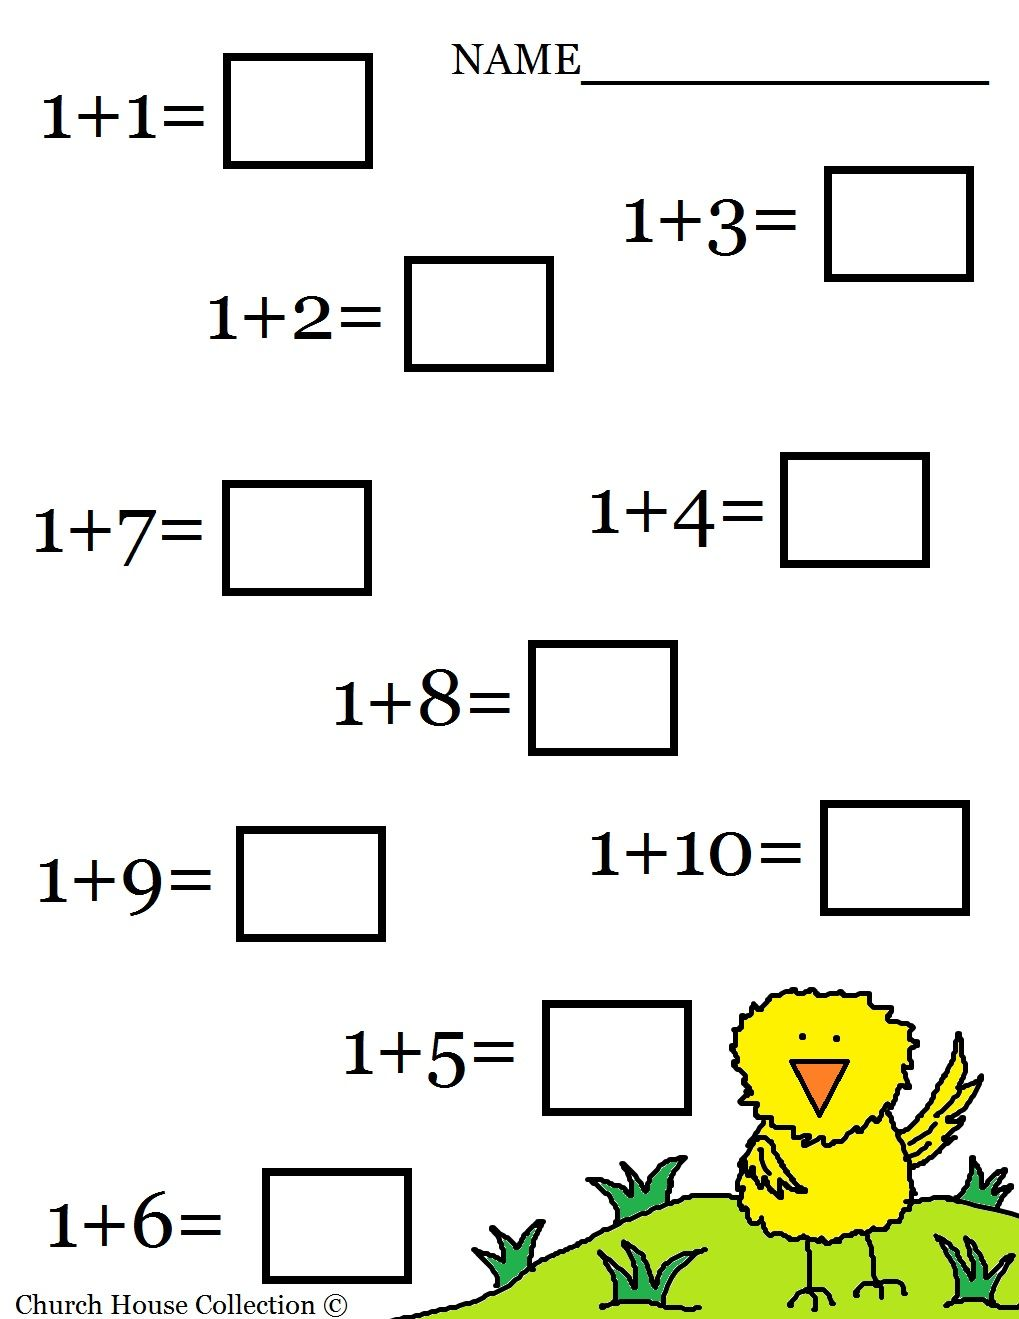 Aldiablosus  Remarkable  Images About Worksheets  Math On Pinterest  Math Sheets  With Gorgeous  Images About Worksheets  Math On Pinterest  Math Sheets Math Worksheets For Kindergarten And Simple Addition With Endearing Instructional Writing Worksheets Also Th Grade Science Worksheets Free In Addition Free Letter F Worksheets And Blank Writing Worksheet As Well As Pronoun Worksheets Grade  Additionally English Reading Worksheets For Grade  From Pinterestcom With Aldiablosus  Gorgeous  Images About Worksheets  Math On Pinterest  Math Sheets  With Endearing  Images About Worksheets  Math On Pinterest  Math Sheets Math Worksheets For Kindergarten And Simple Addition And Remarkable Instructional Writing Worksheets Also Th Grade Science Worksheets Free In Addition Free Letter F Worksheets From Pinterestcom